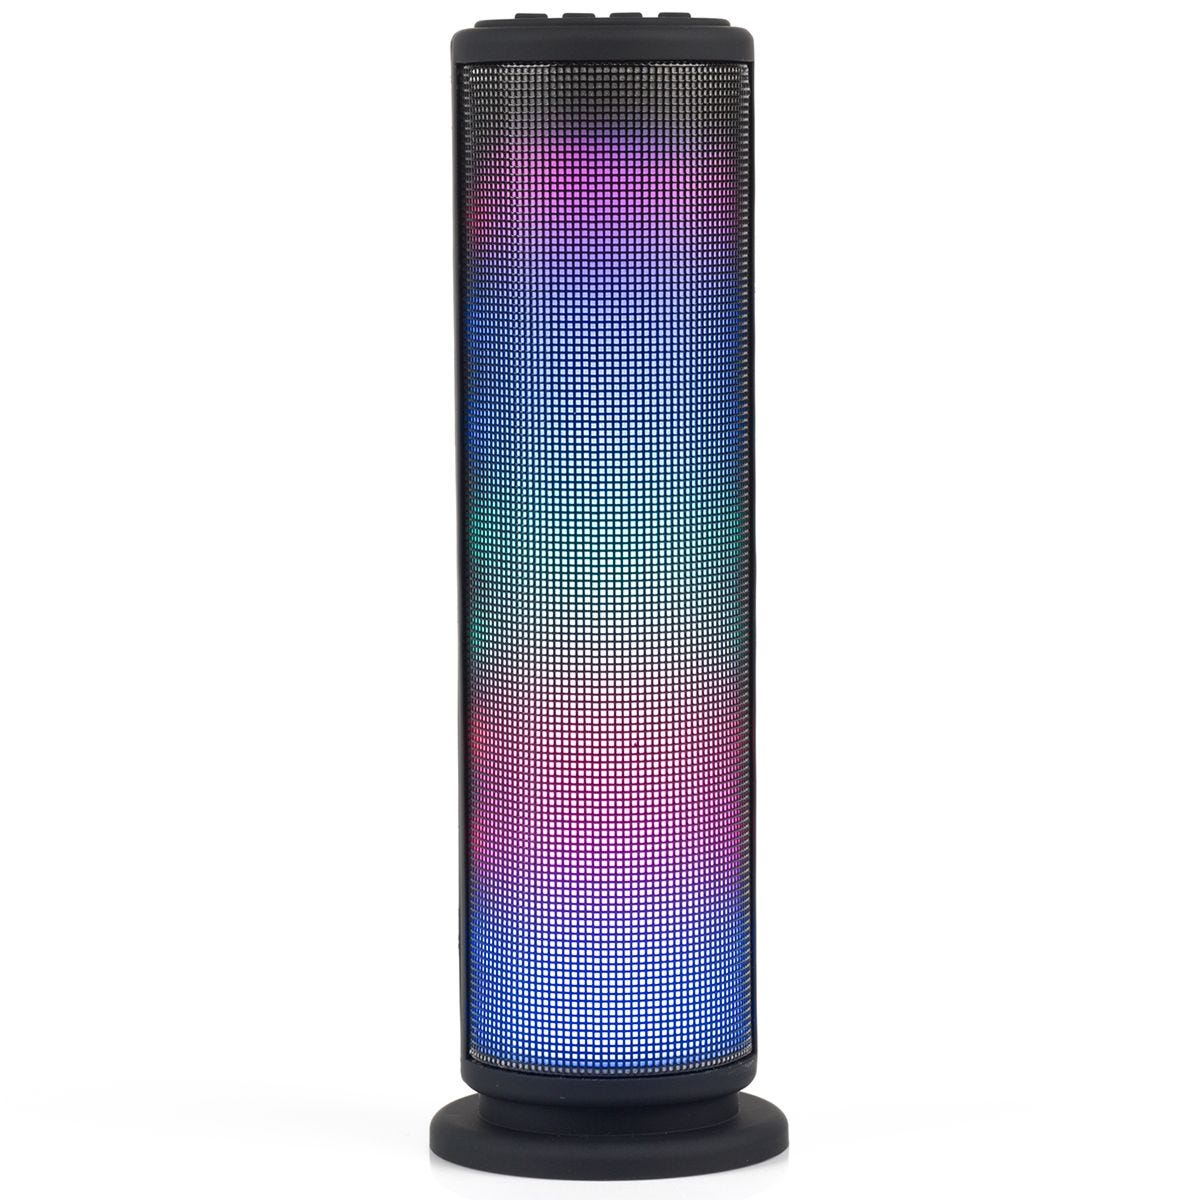 Intempo LED Light Tower 3 W Bluetooth Speaker for iPhone, iPad, Samsung Galaxy, Android and other Smart USB Devices  - Black